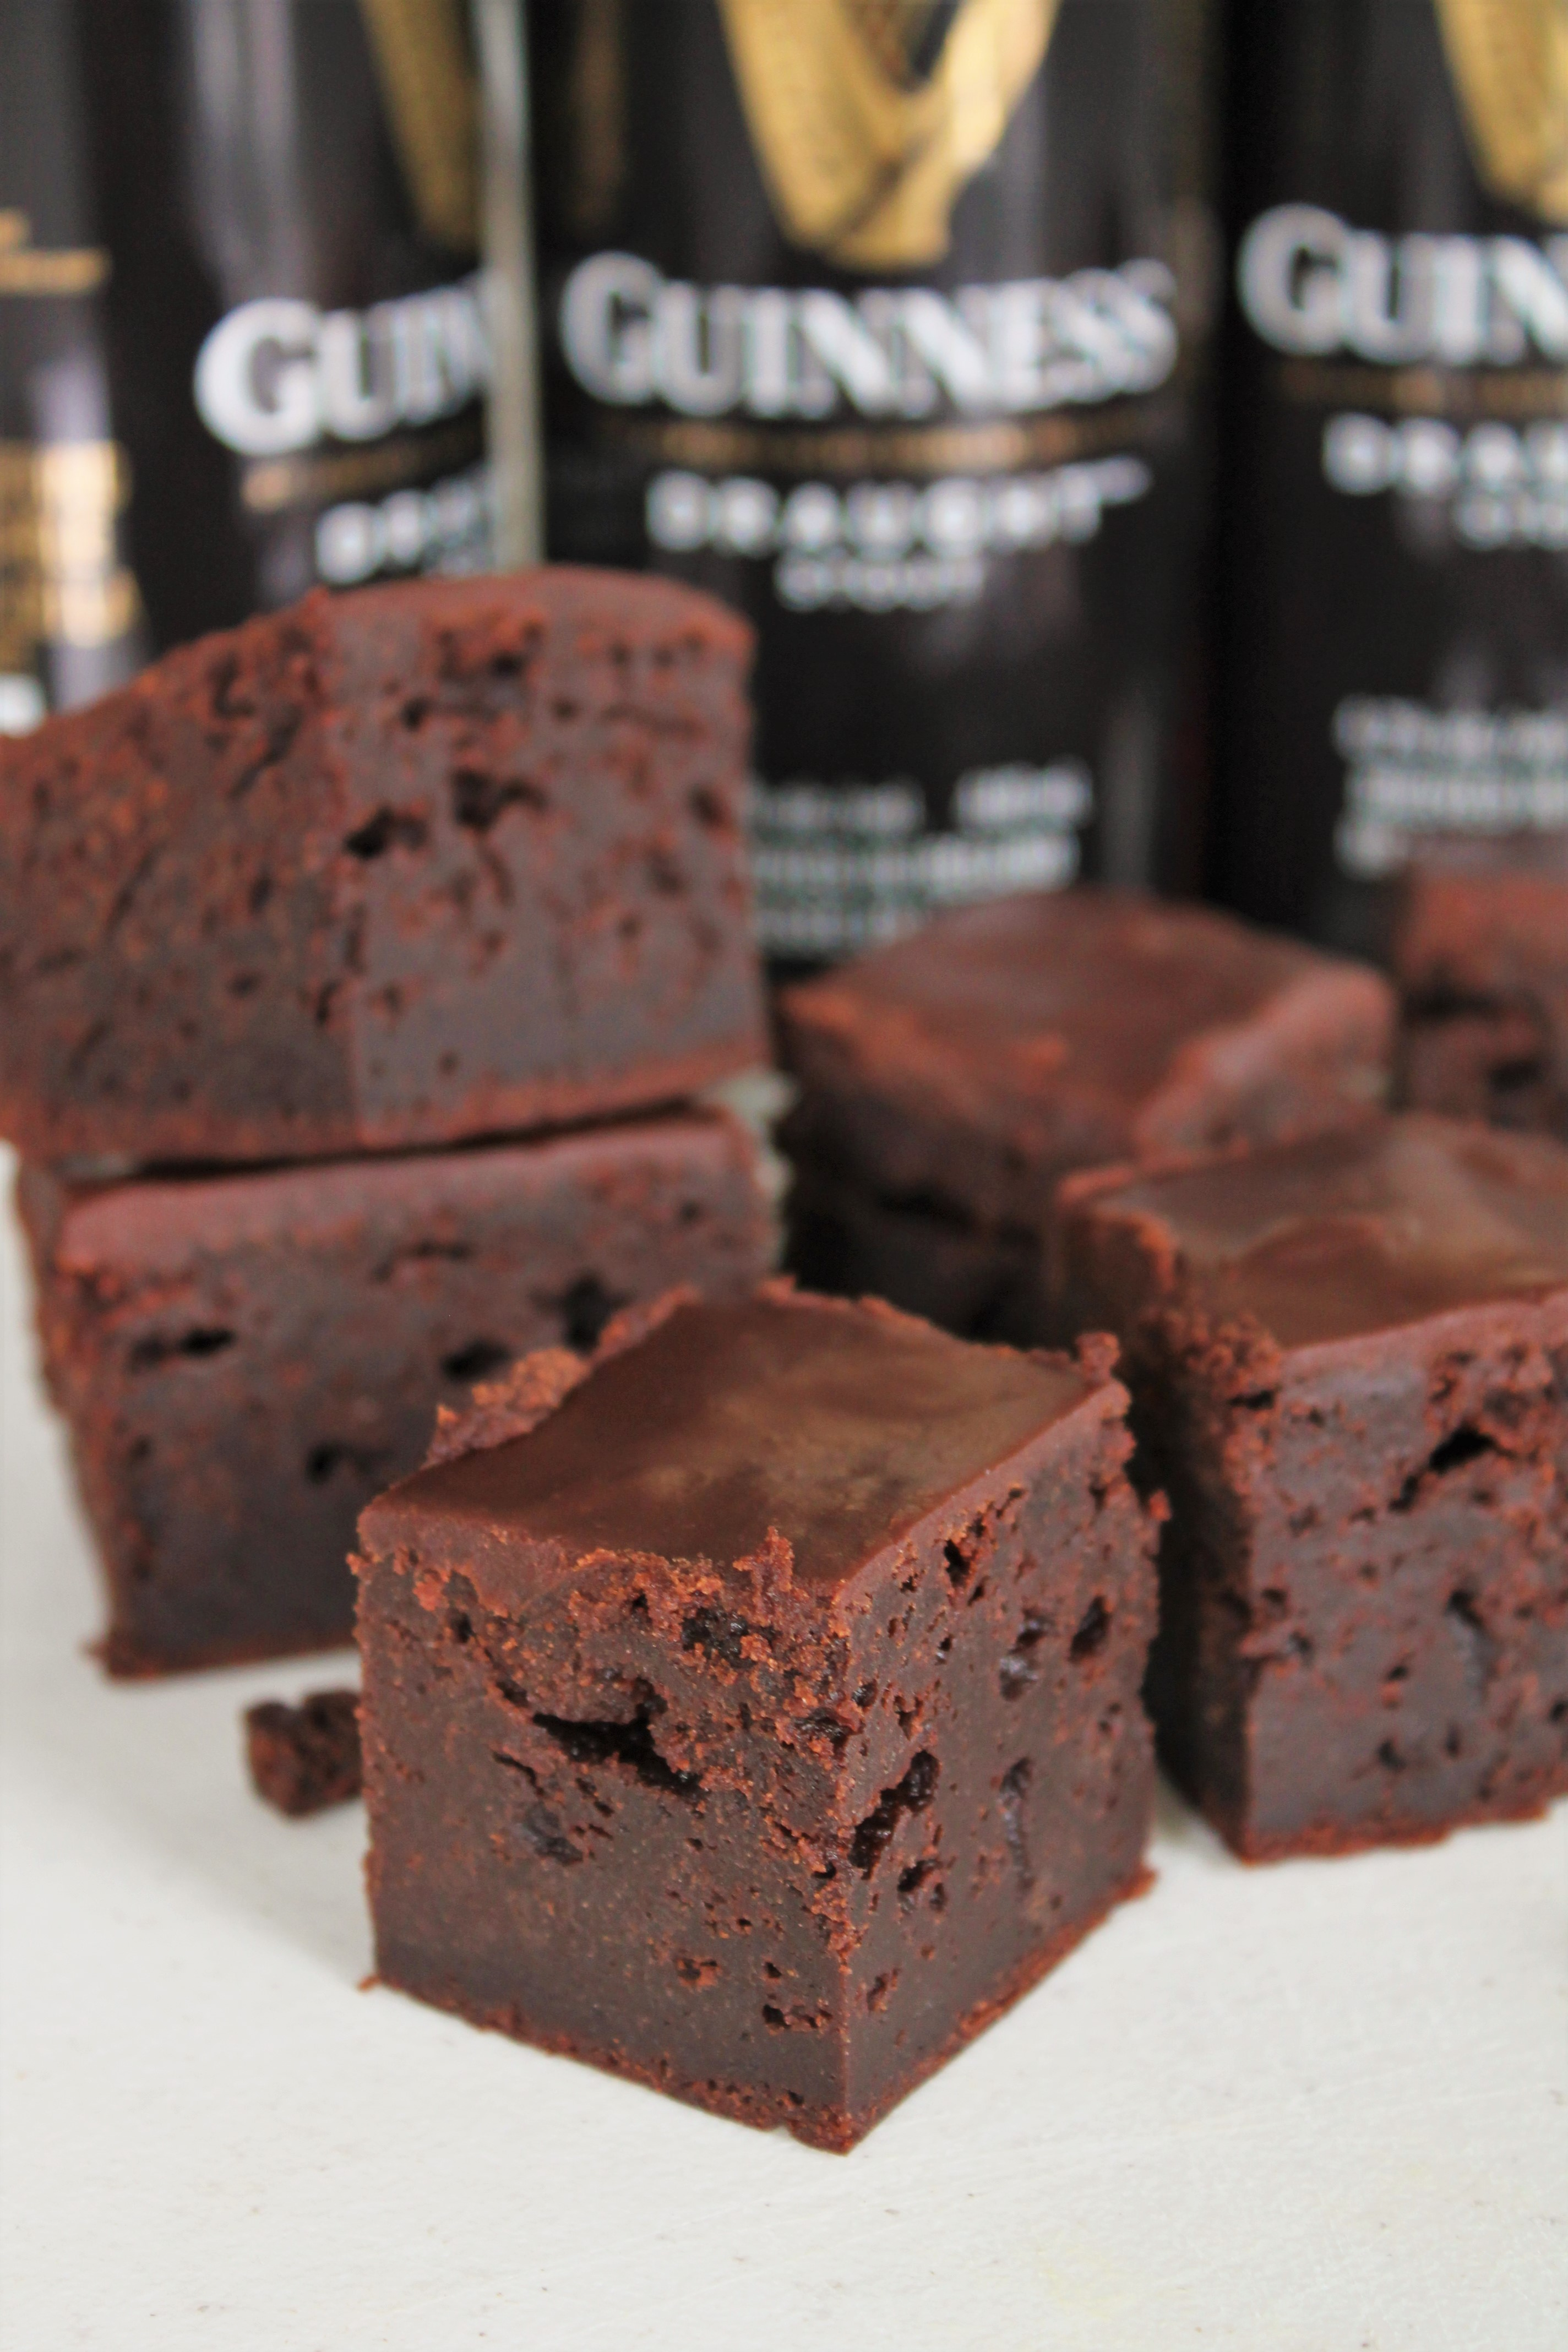 The Ultimate Guiness Brownies with Chocolate Ganache